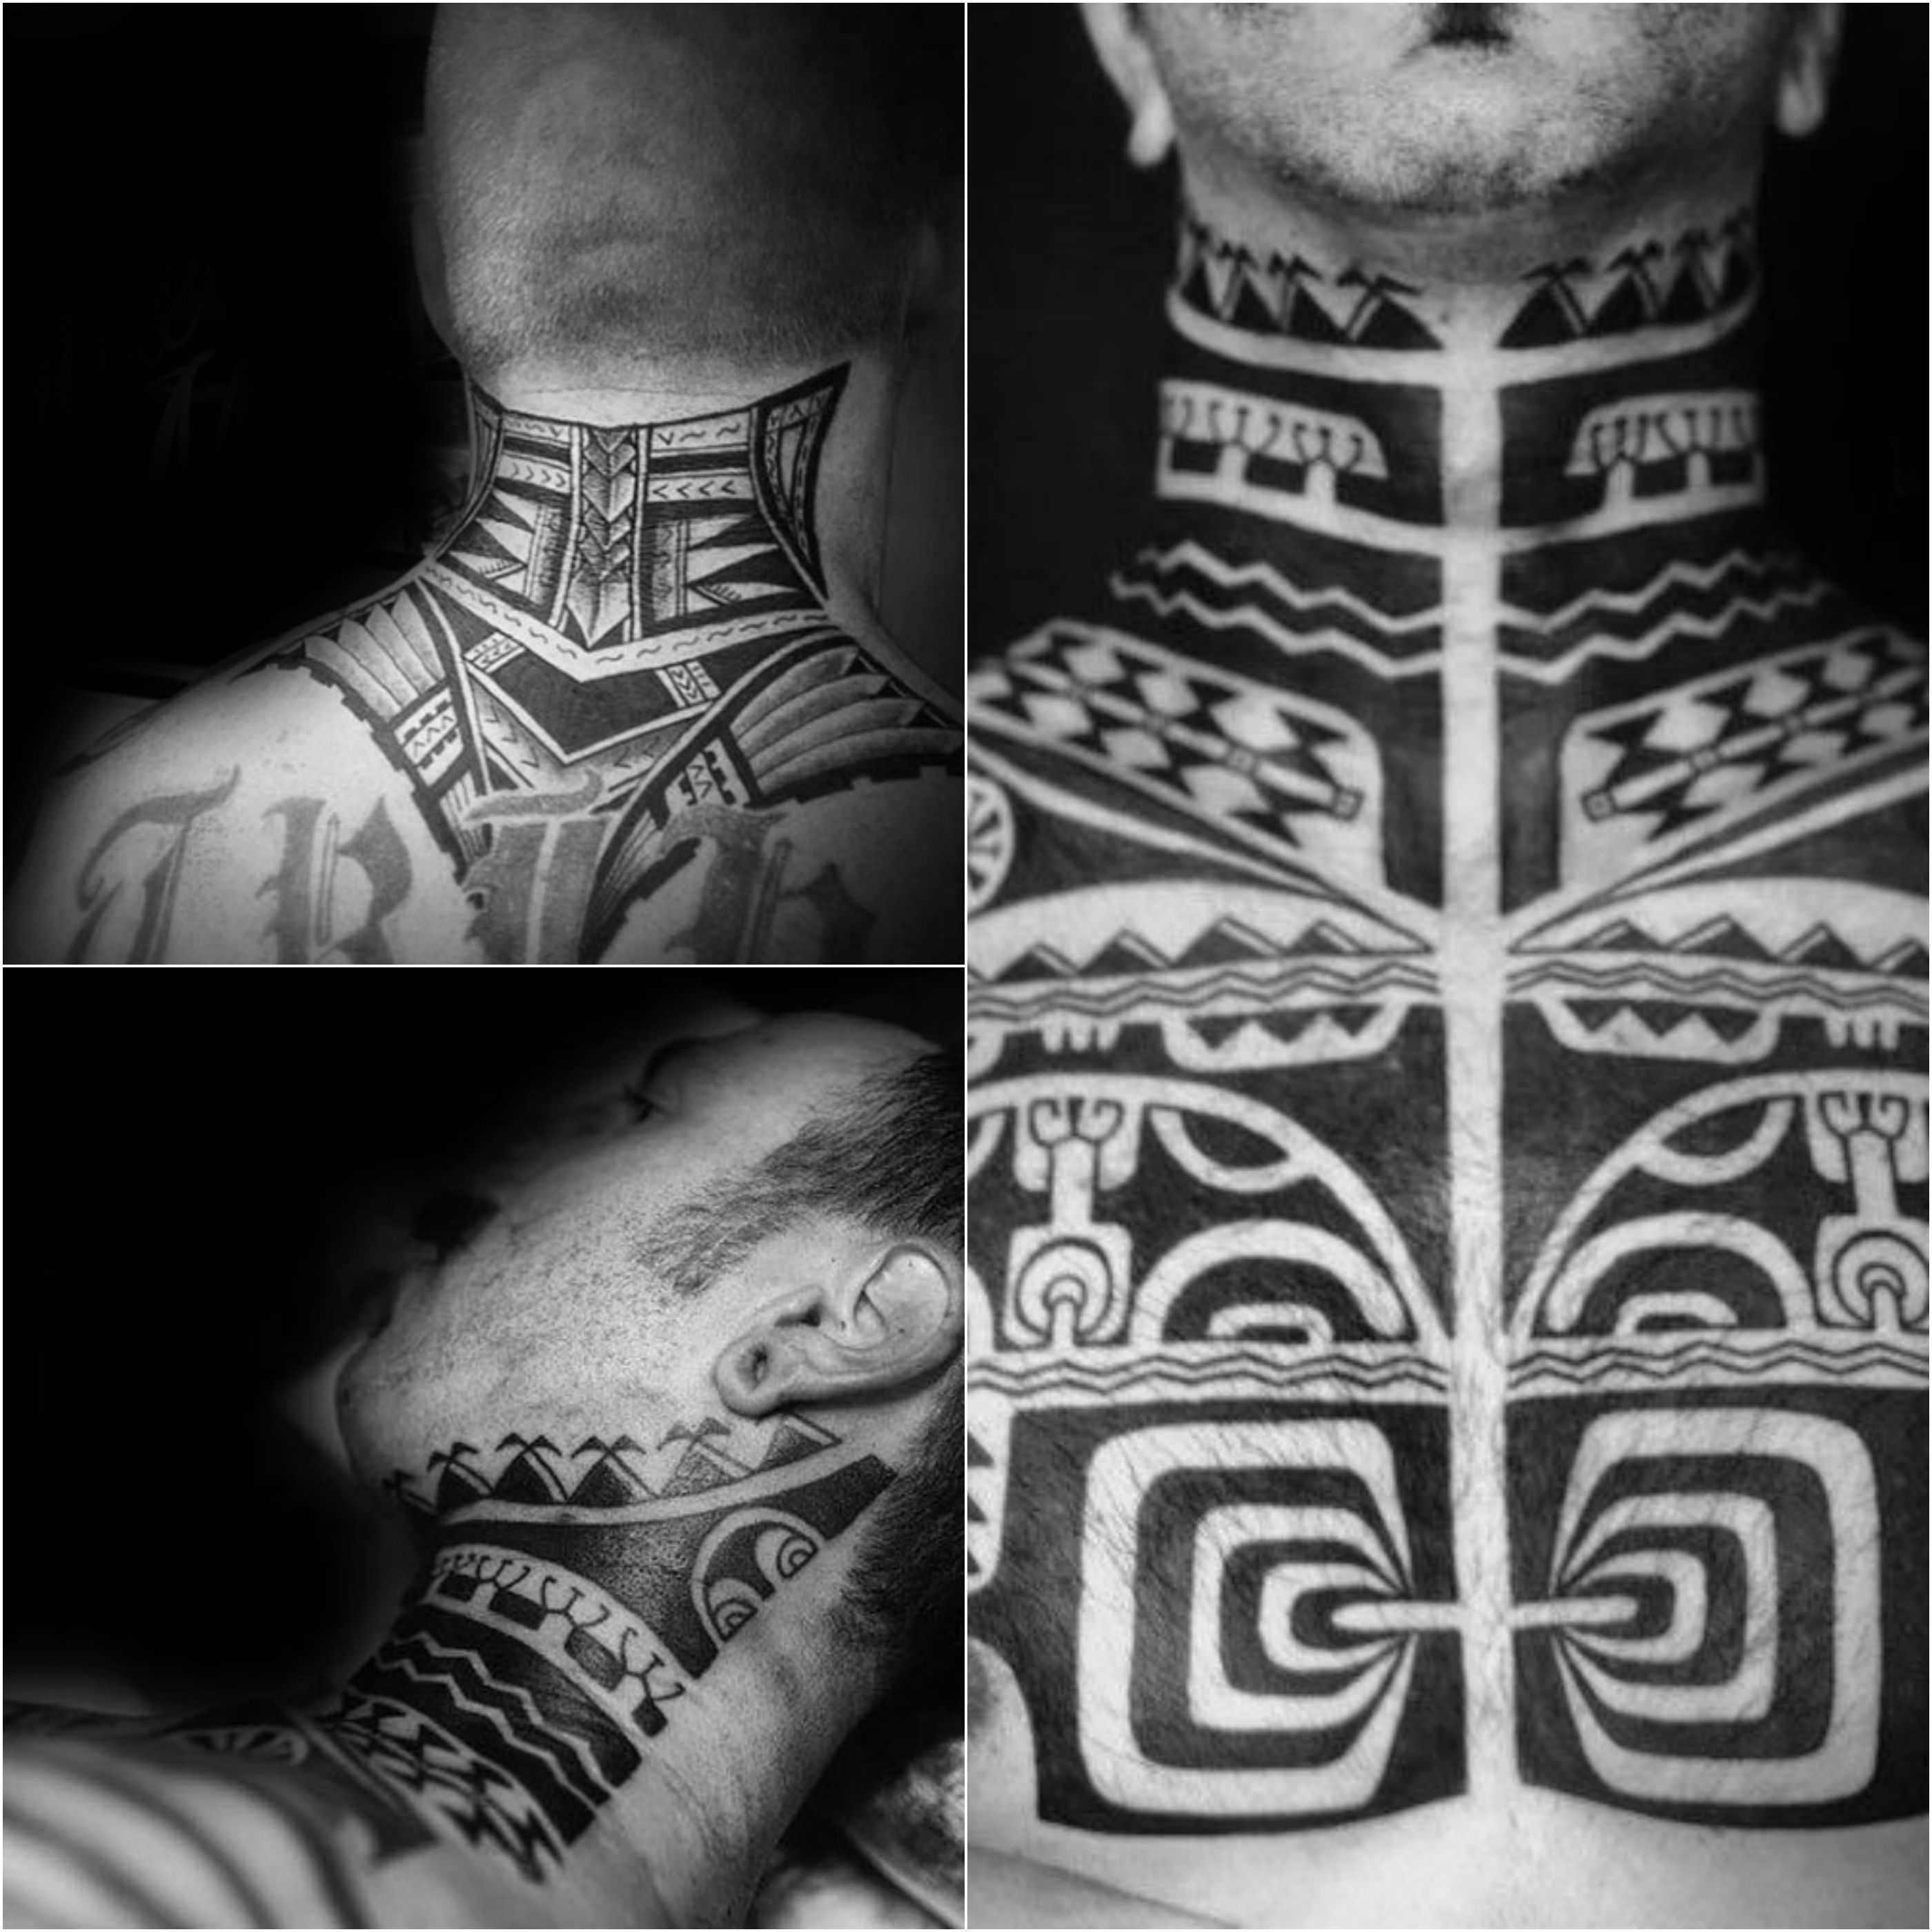 100 Best Neck Tattoo Designs Creative Neck Tattoo Ideas Gallery Neck Tattoo For Guys Tribal Neck Tattoos Tribal Tattoos